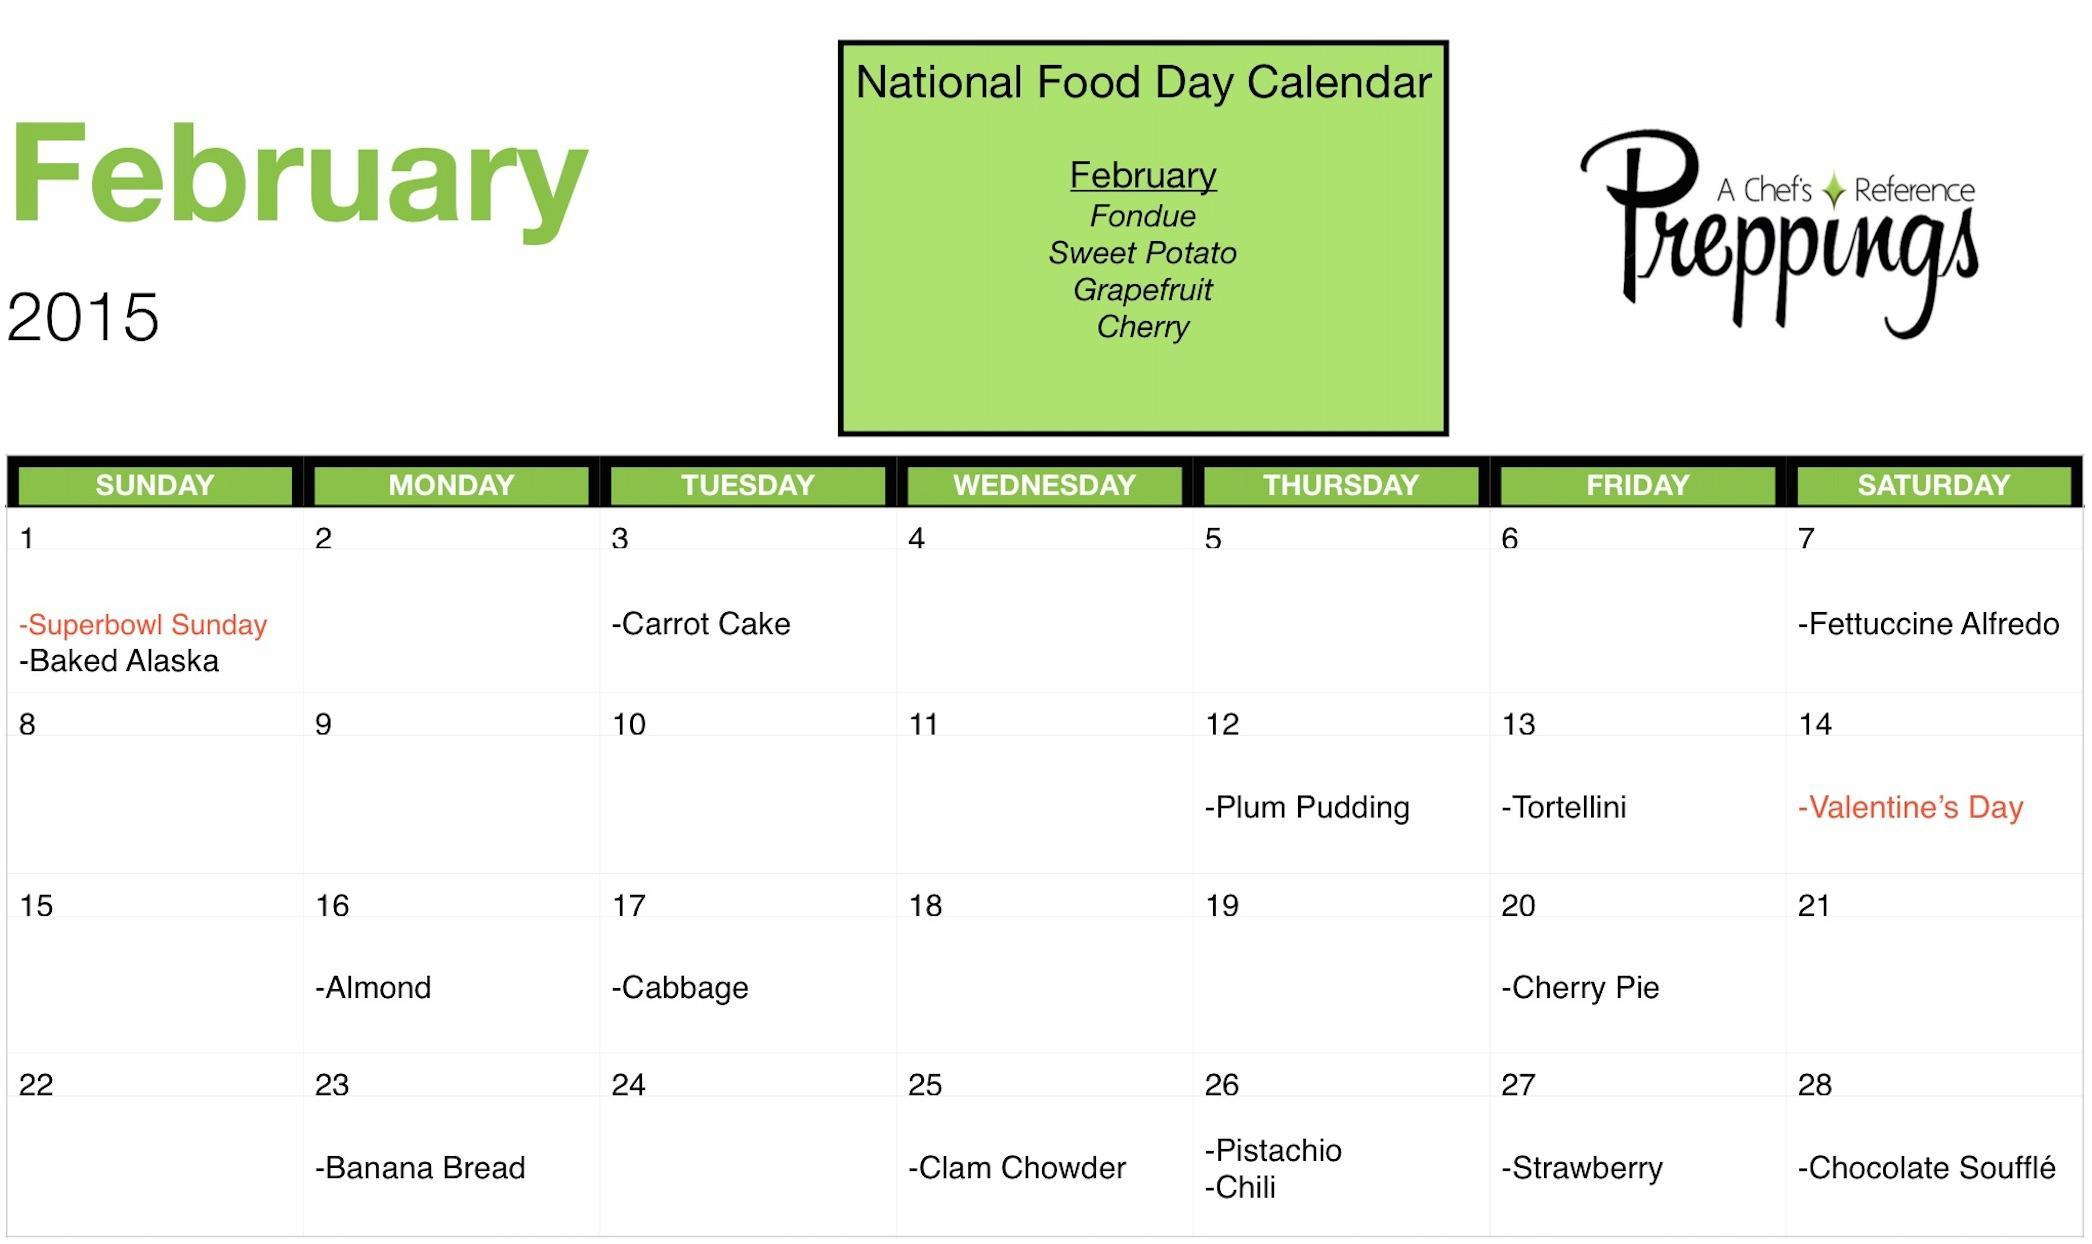 National Food Days- February 2015 - Preppings